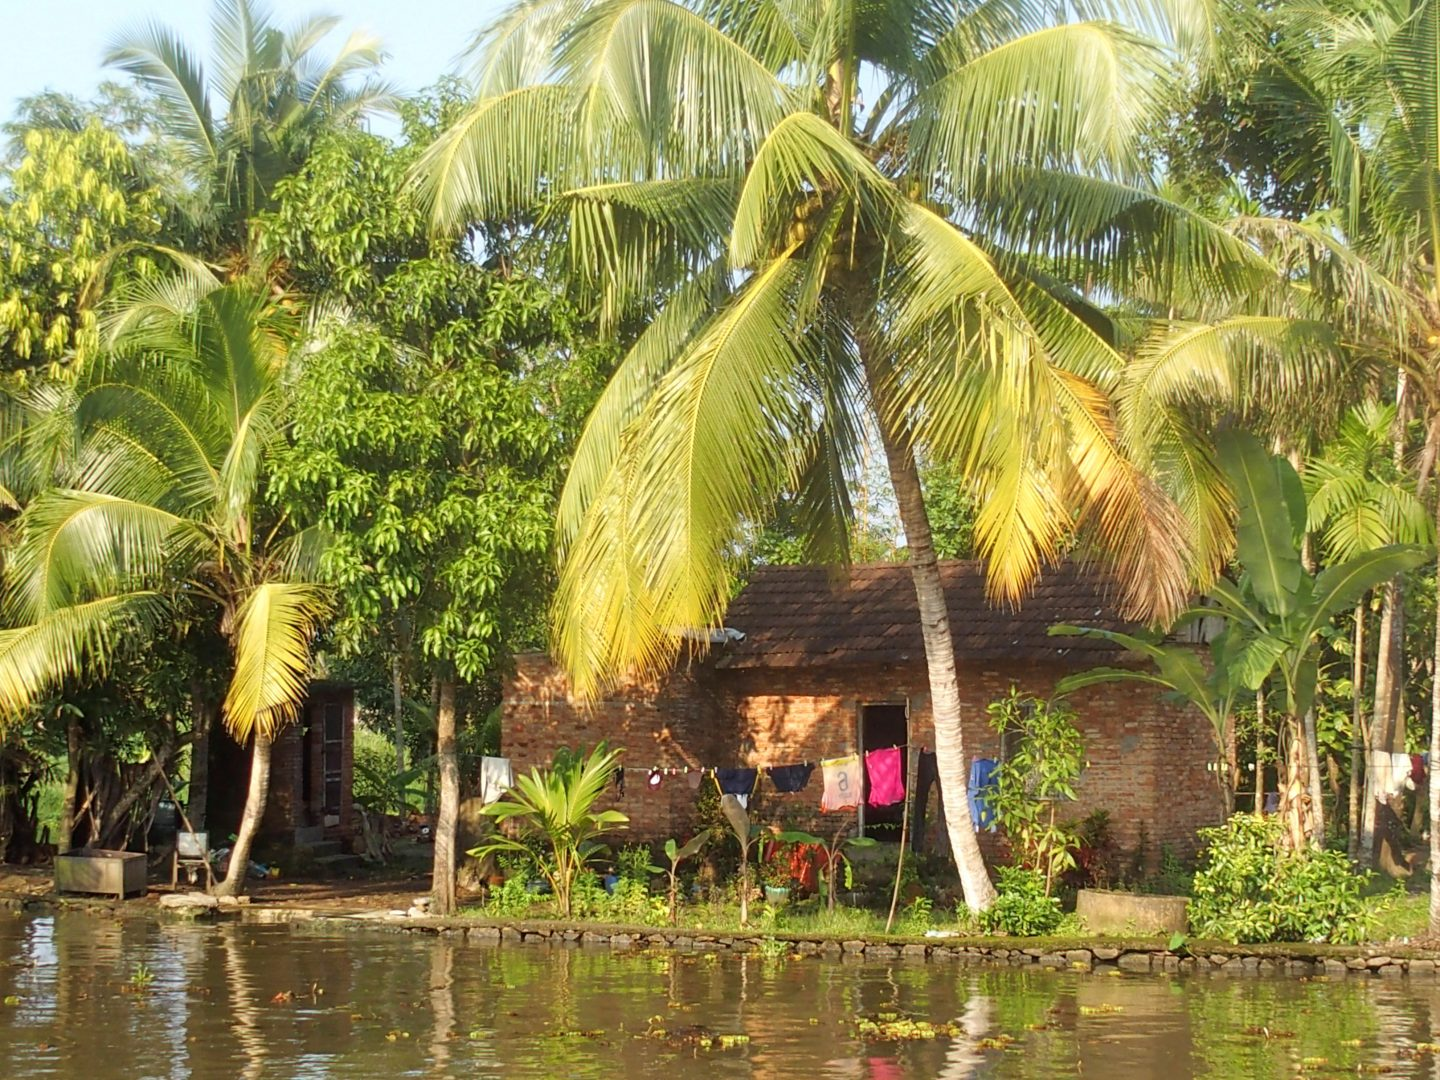 Maison rive backwaters Allepey Kerala Inde